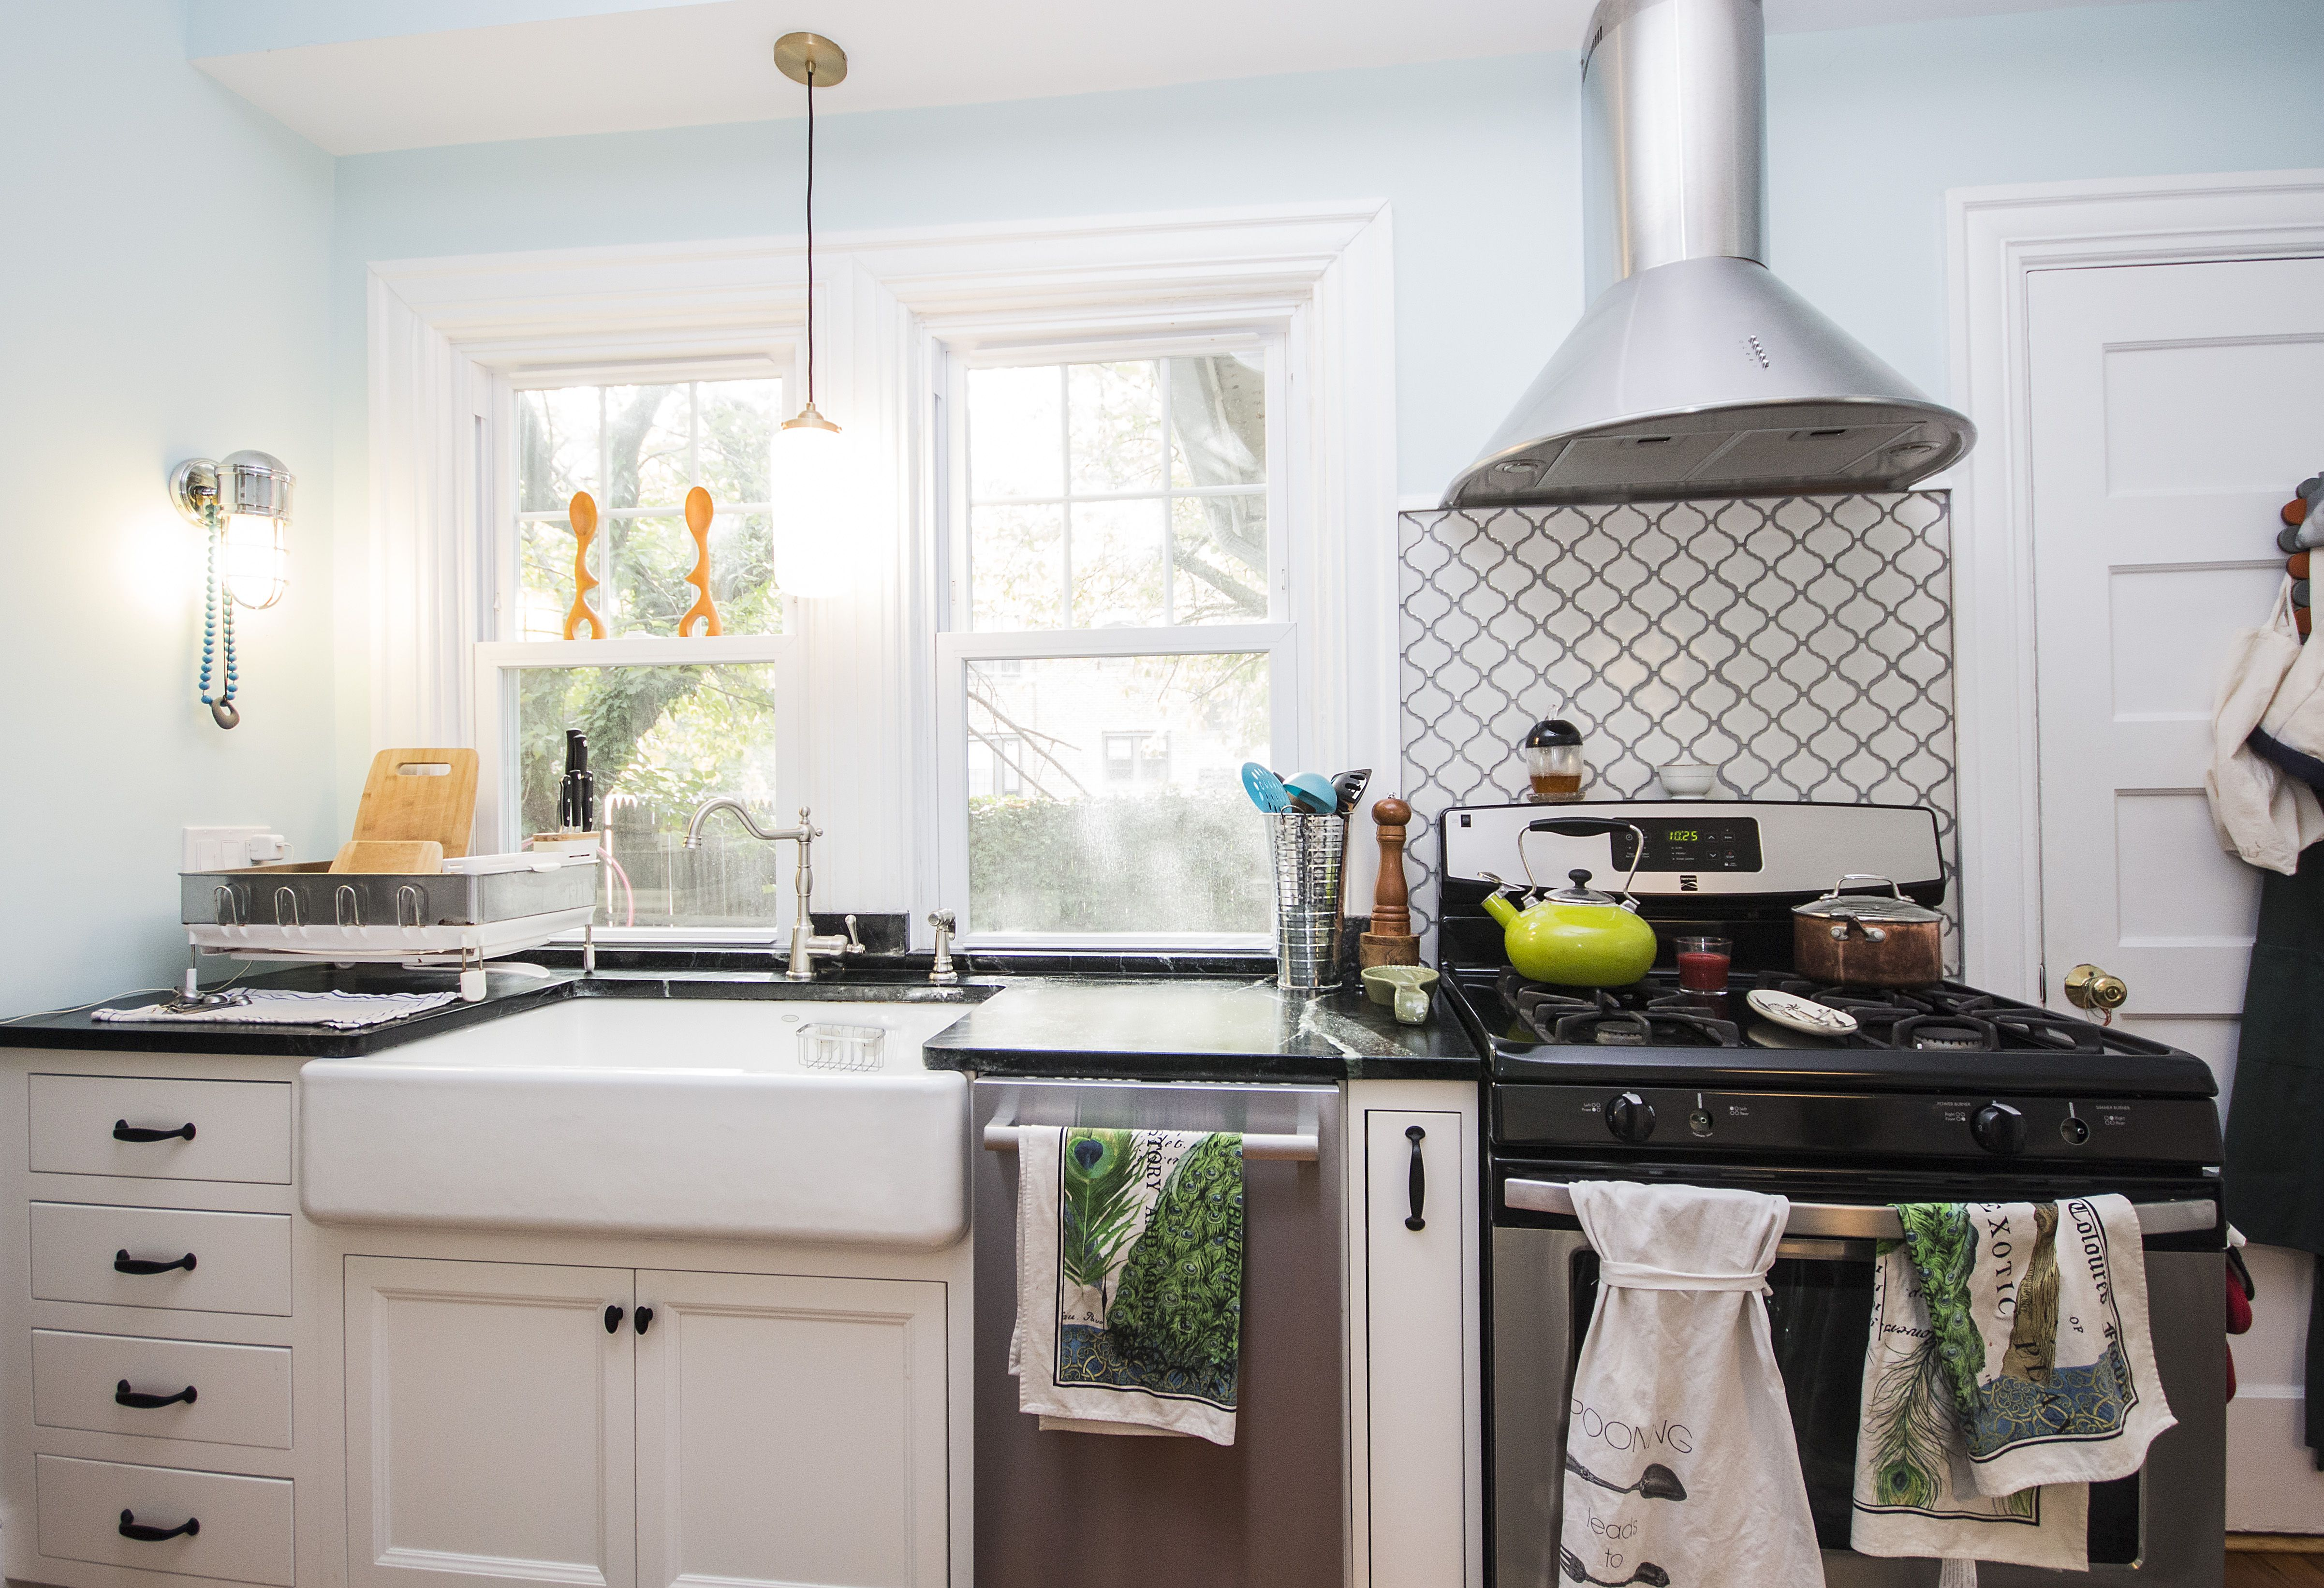 1896 East side of Providence,RI kitchen remodel. Keeping the period ...